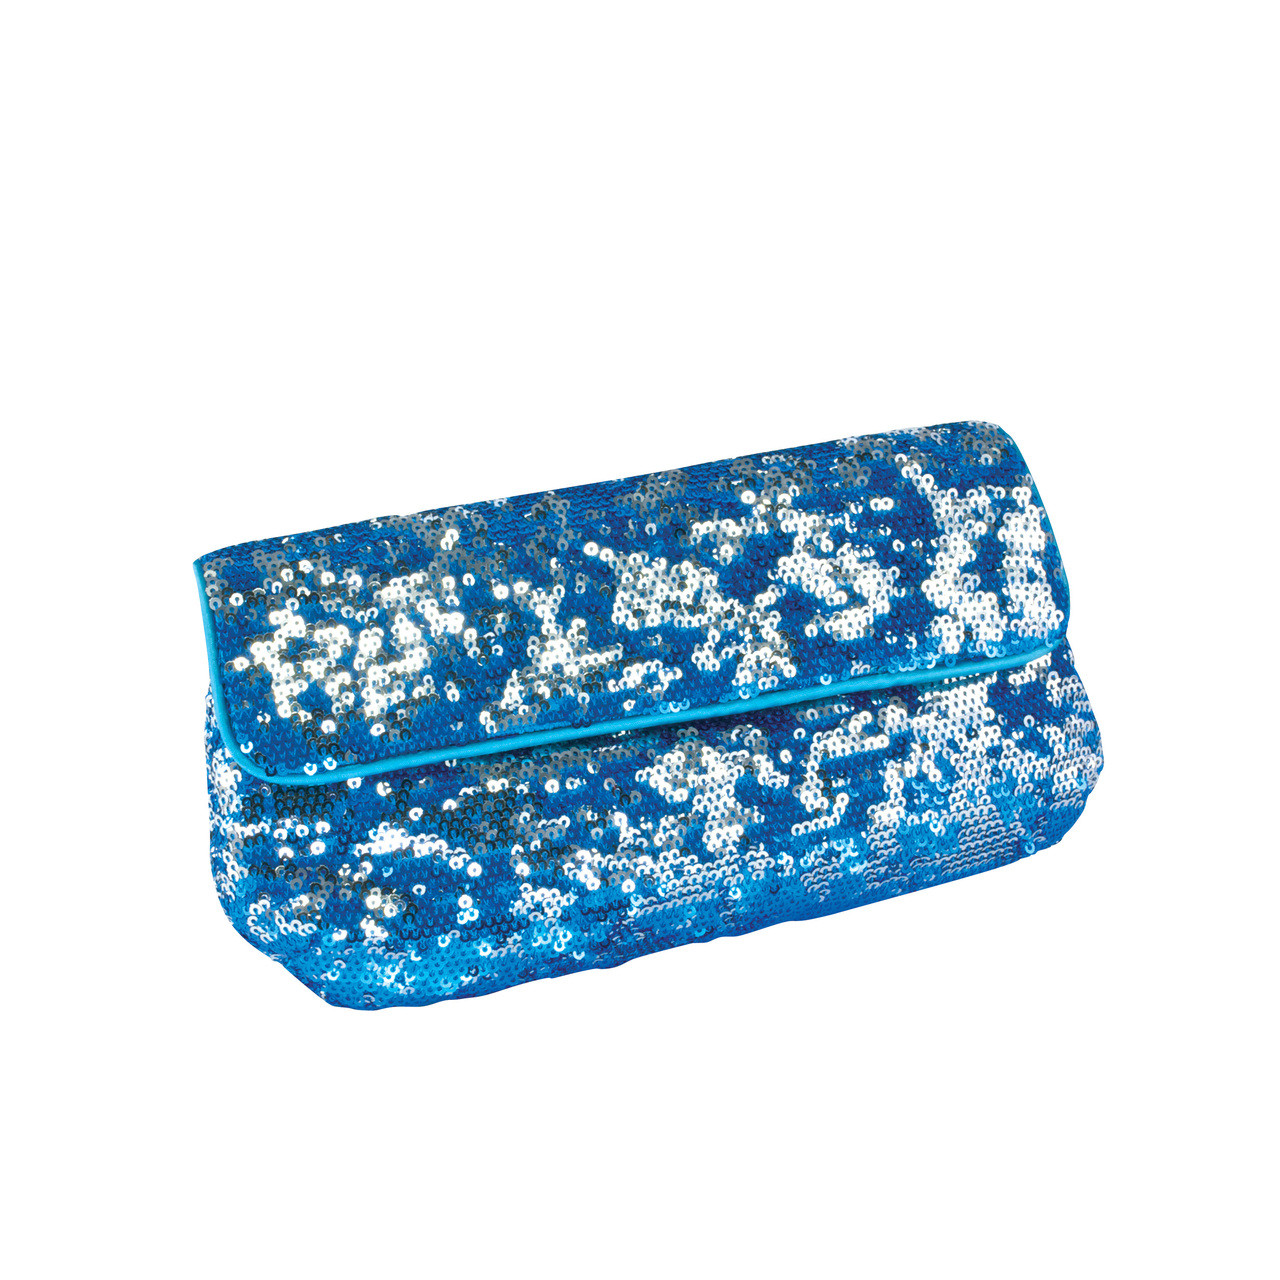 Dyeables Handbags Accessory HB2029 - Turquoise Sequins